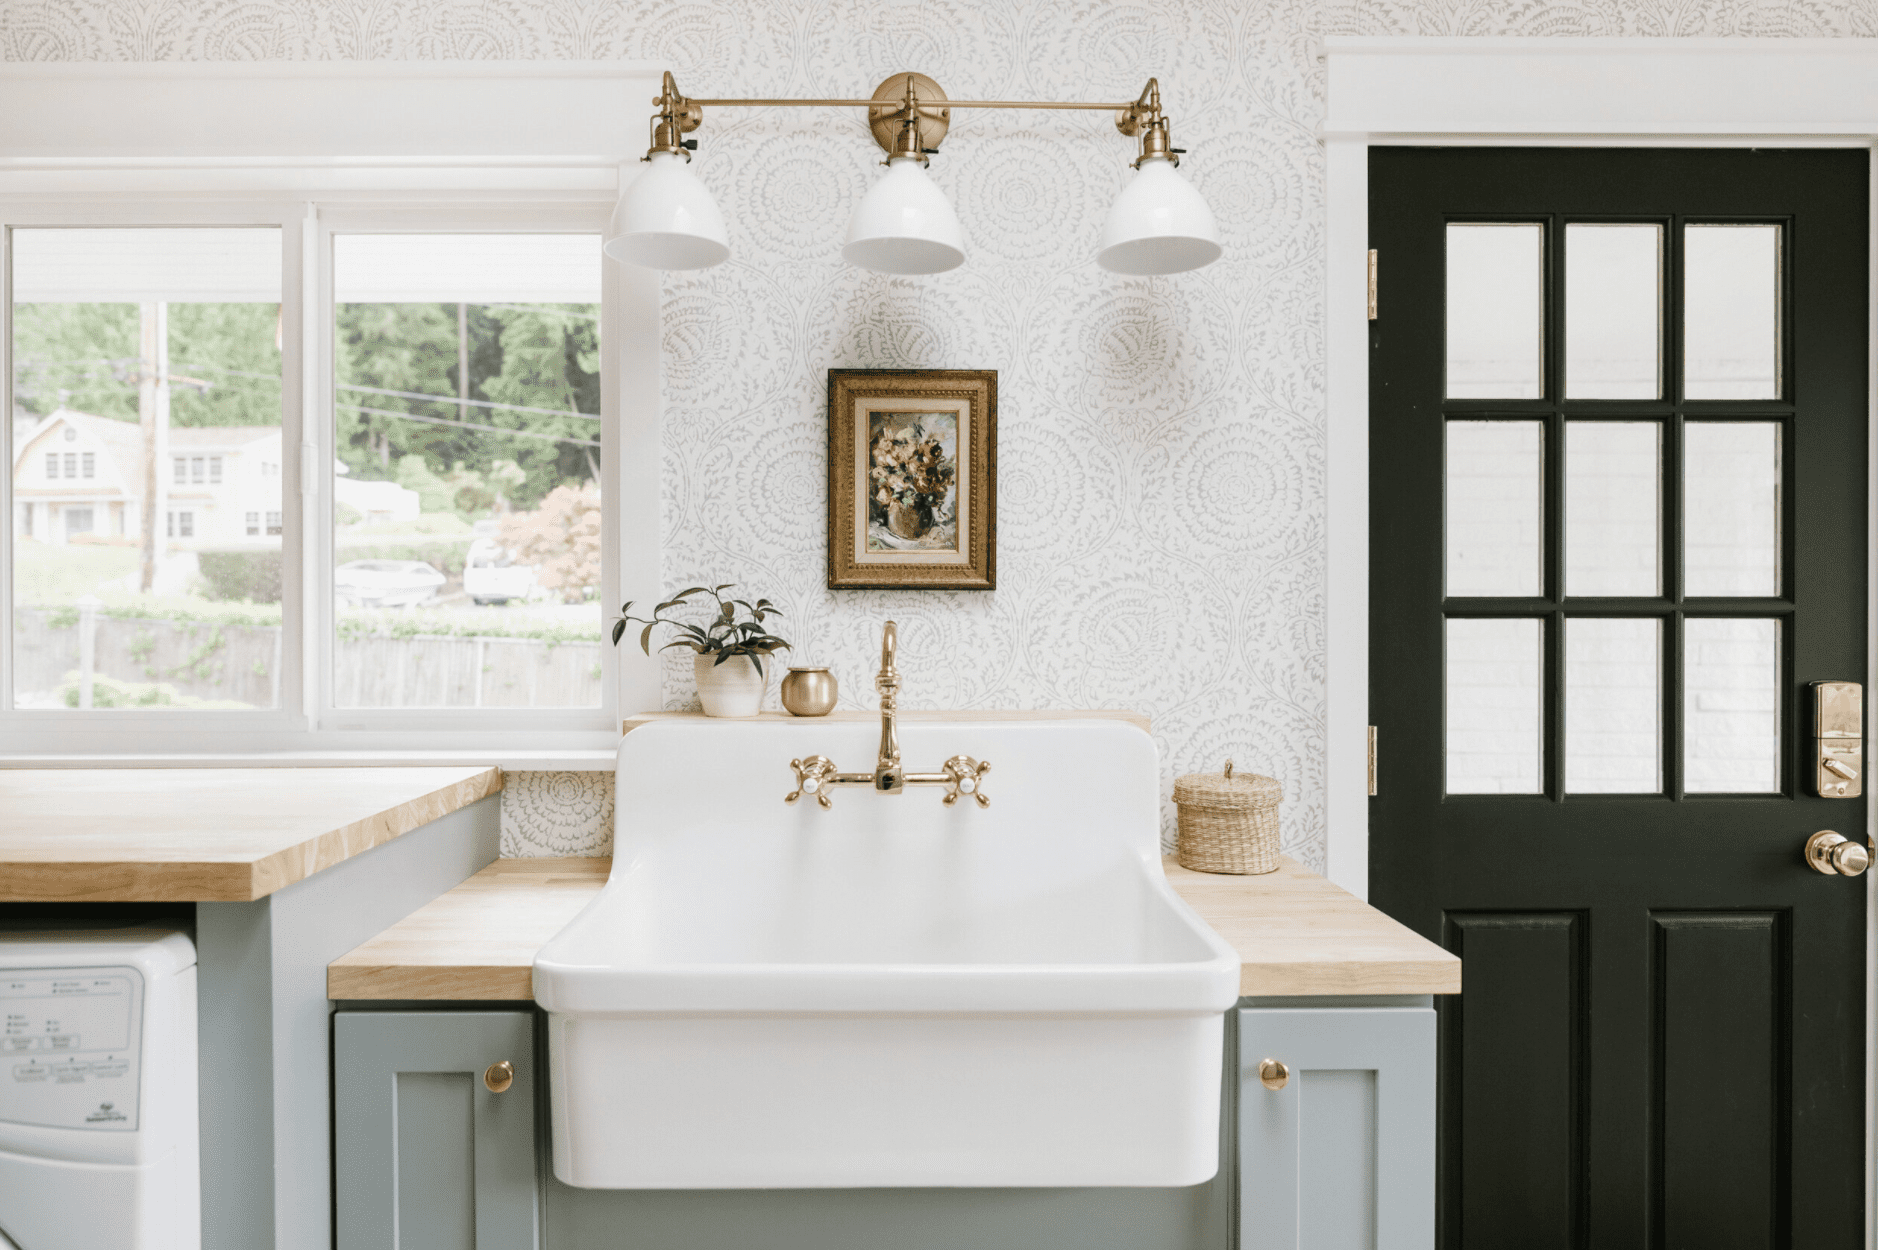 A farmhouse kitchen with faint wallpaper lining the walls